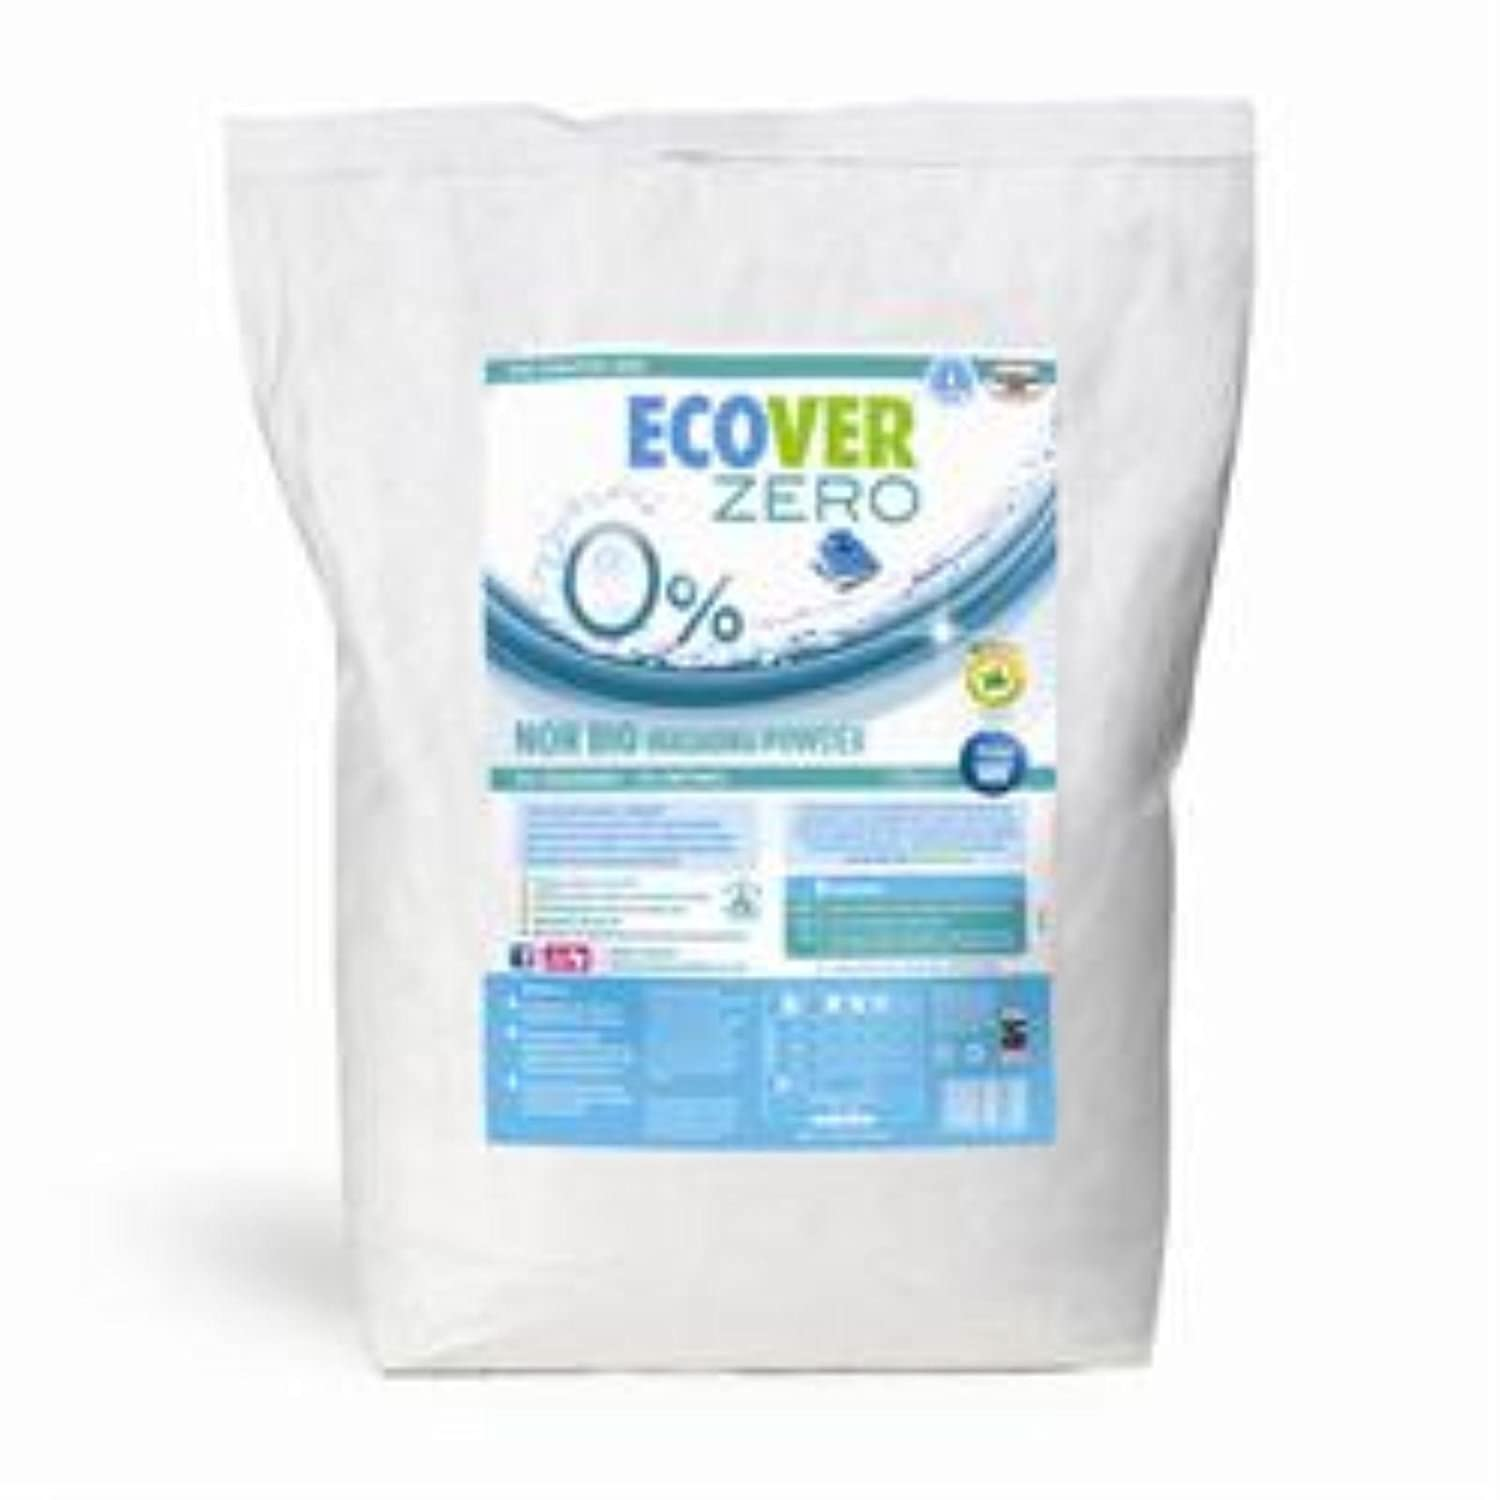 Ecover Zero Non Bio Washing Powder 7.5 Kilogram Suma WholeFoods B005QSBQ4A